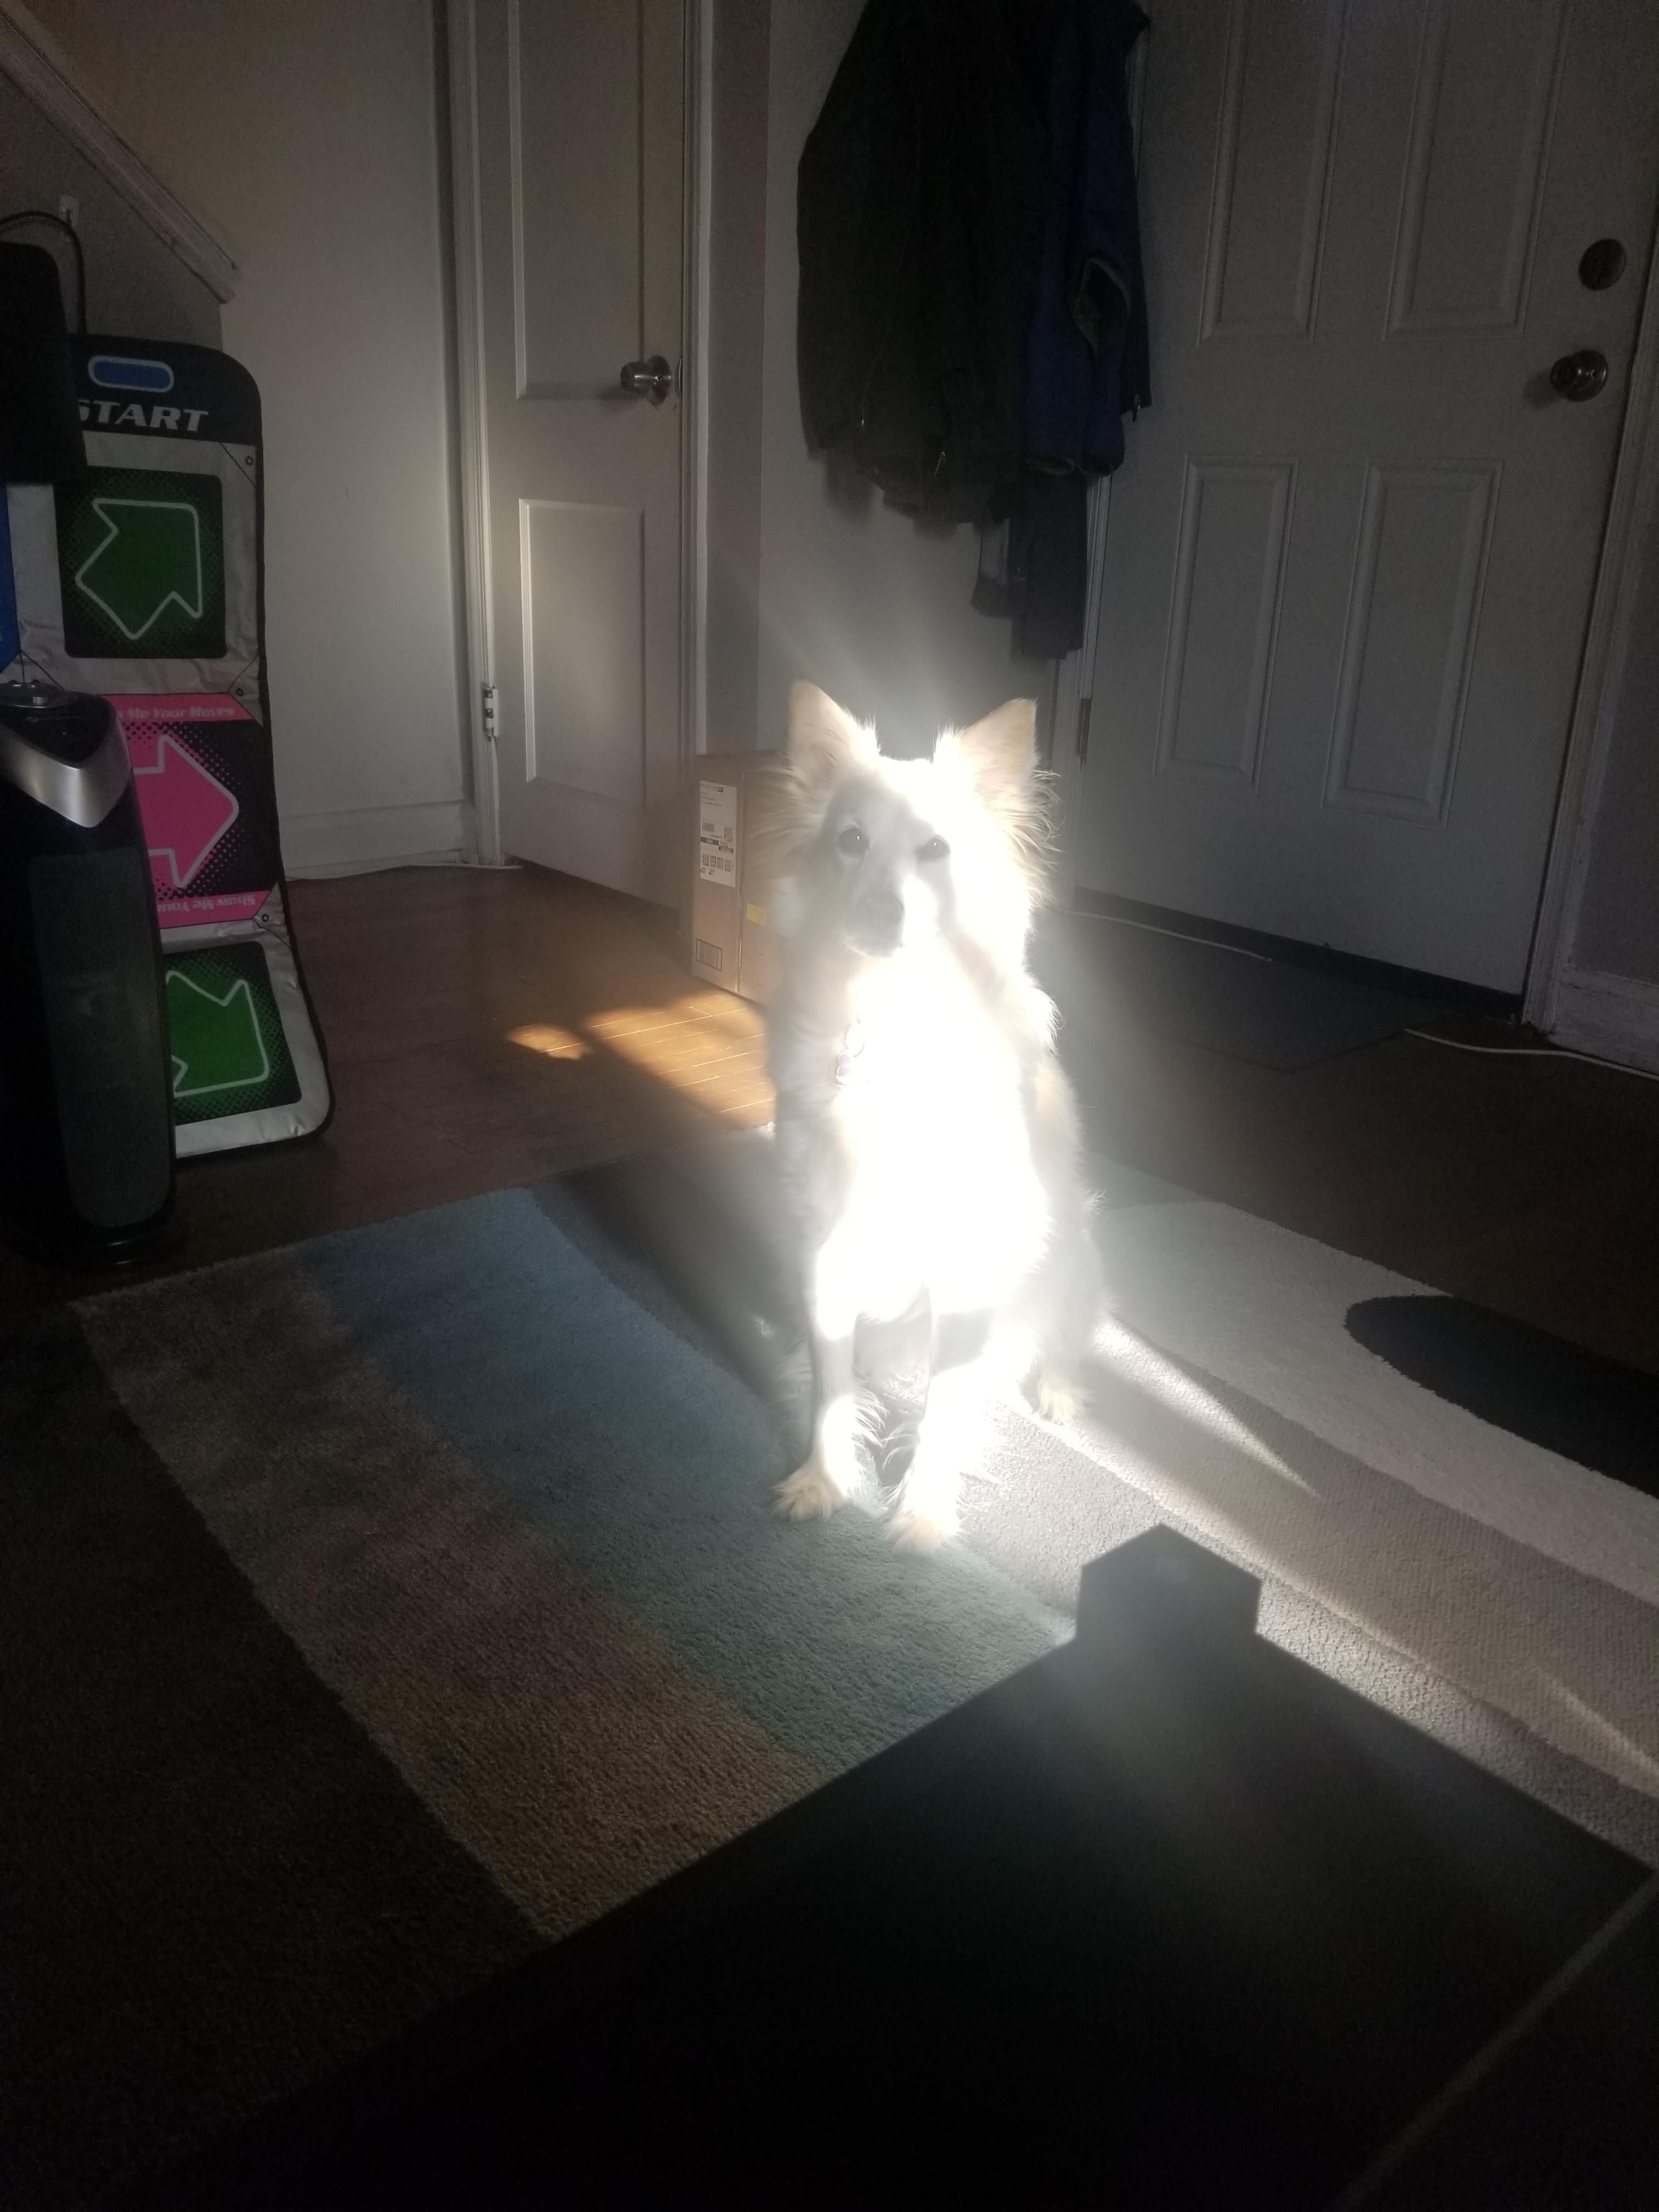 I think my dog has a side quest for me